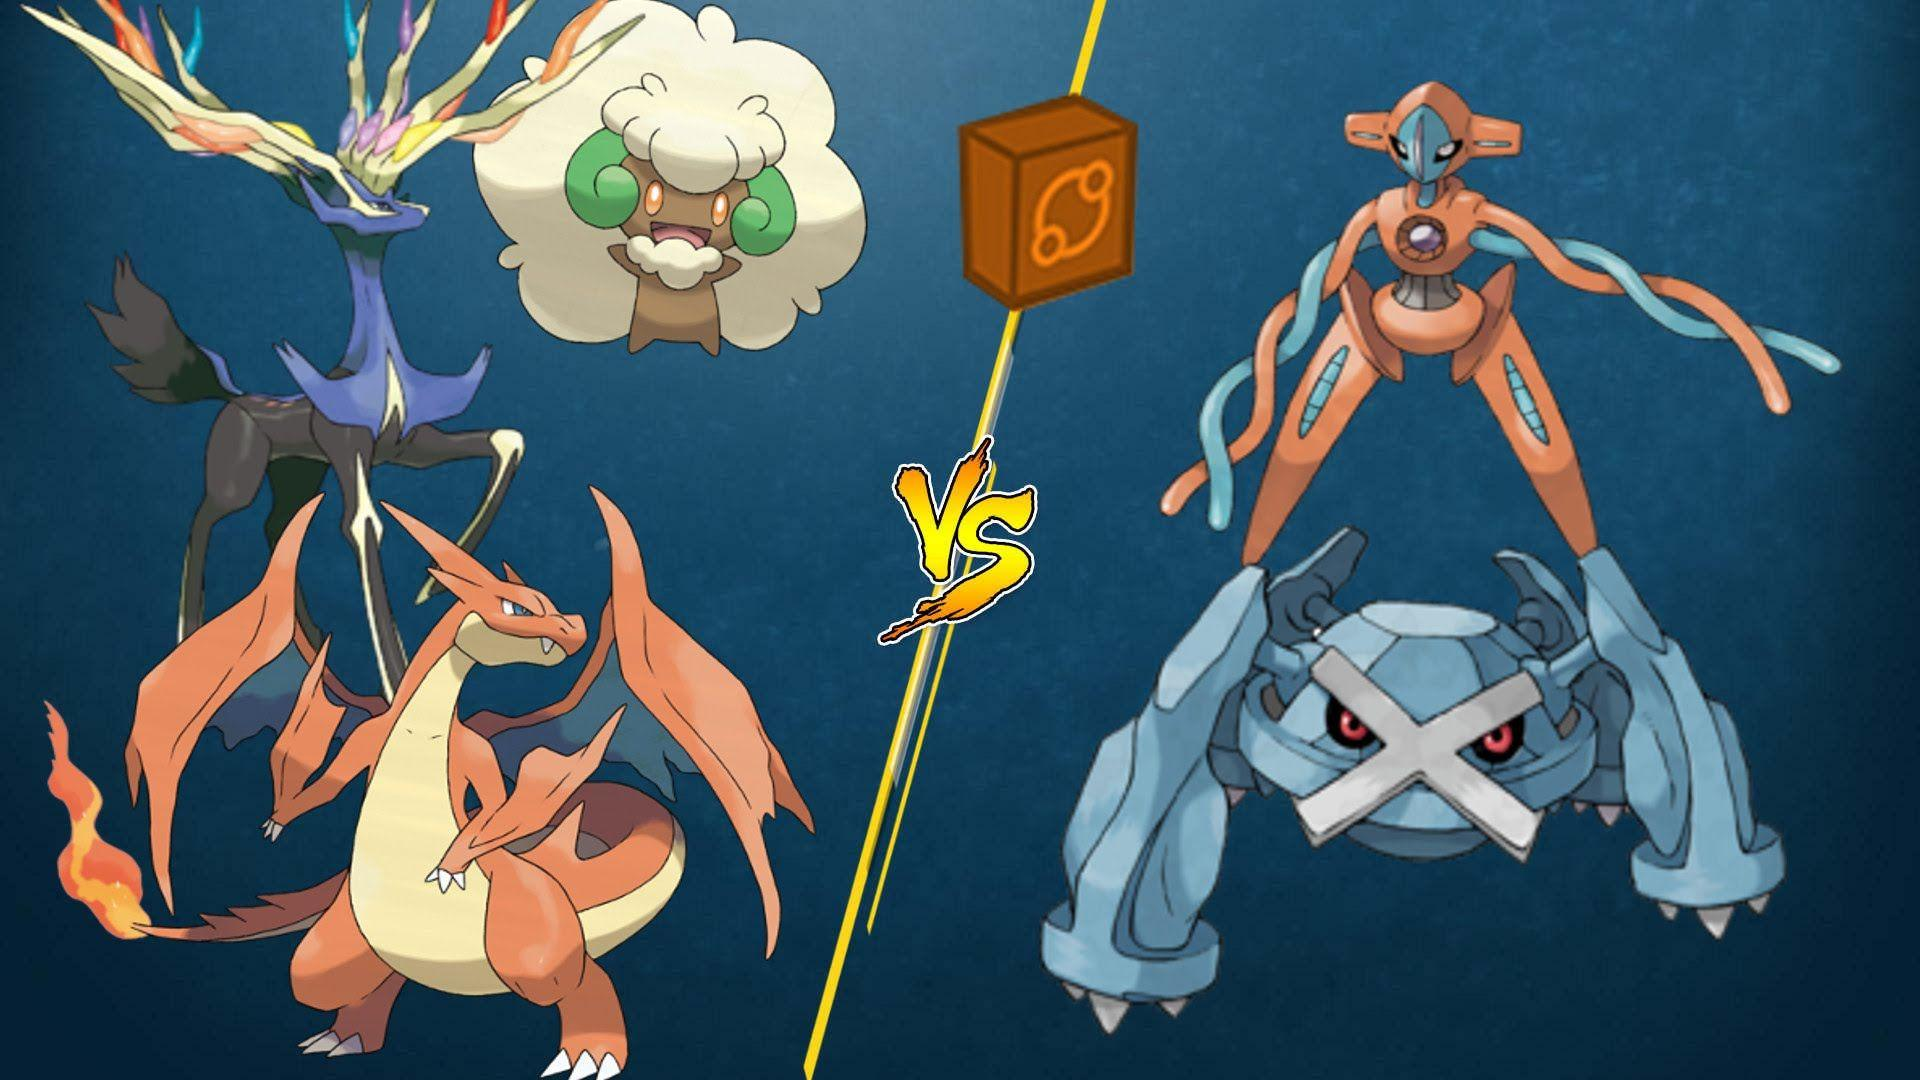 PTCGO Stream Match] M Charizard/Xerneas/Whimsicott vs Metagross